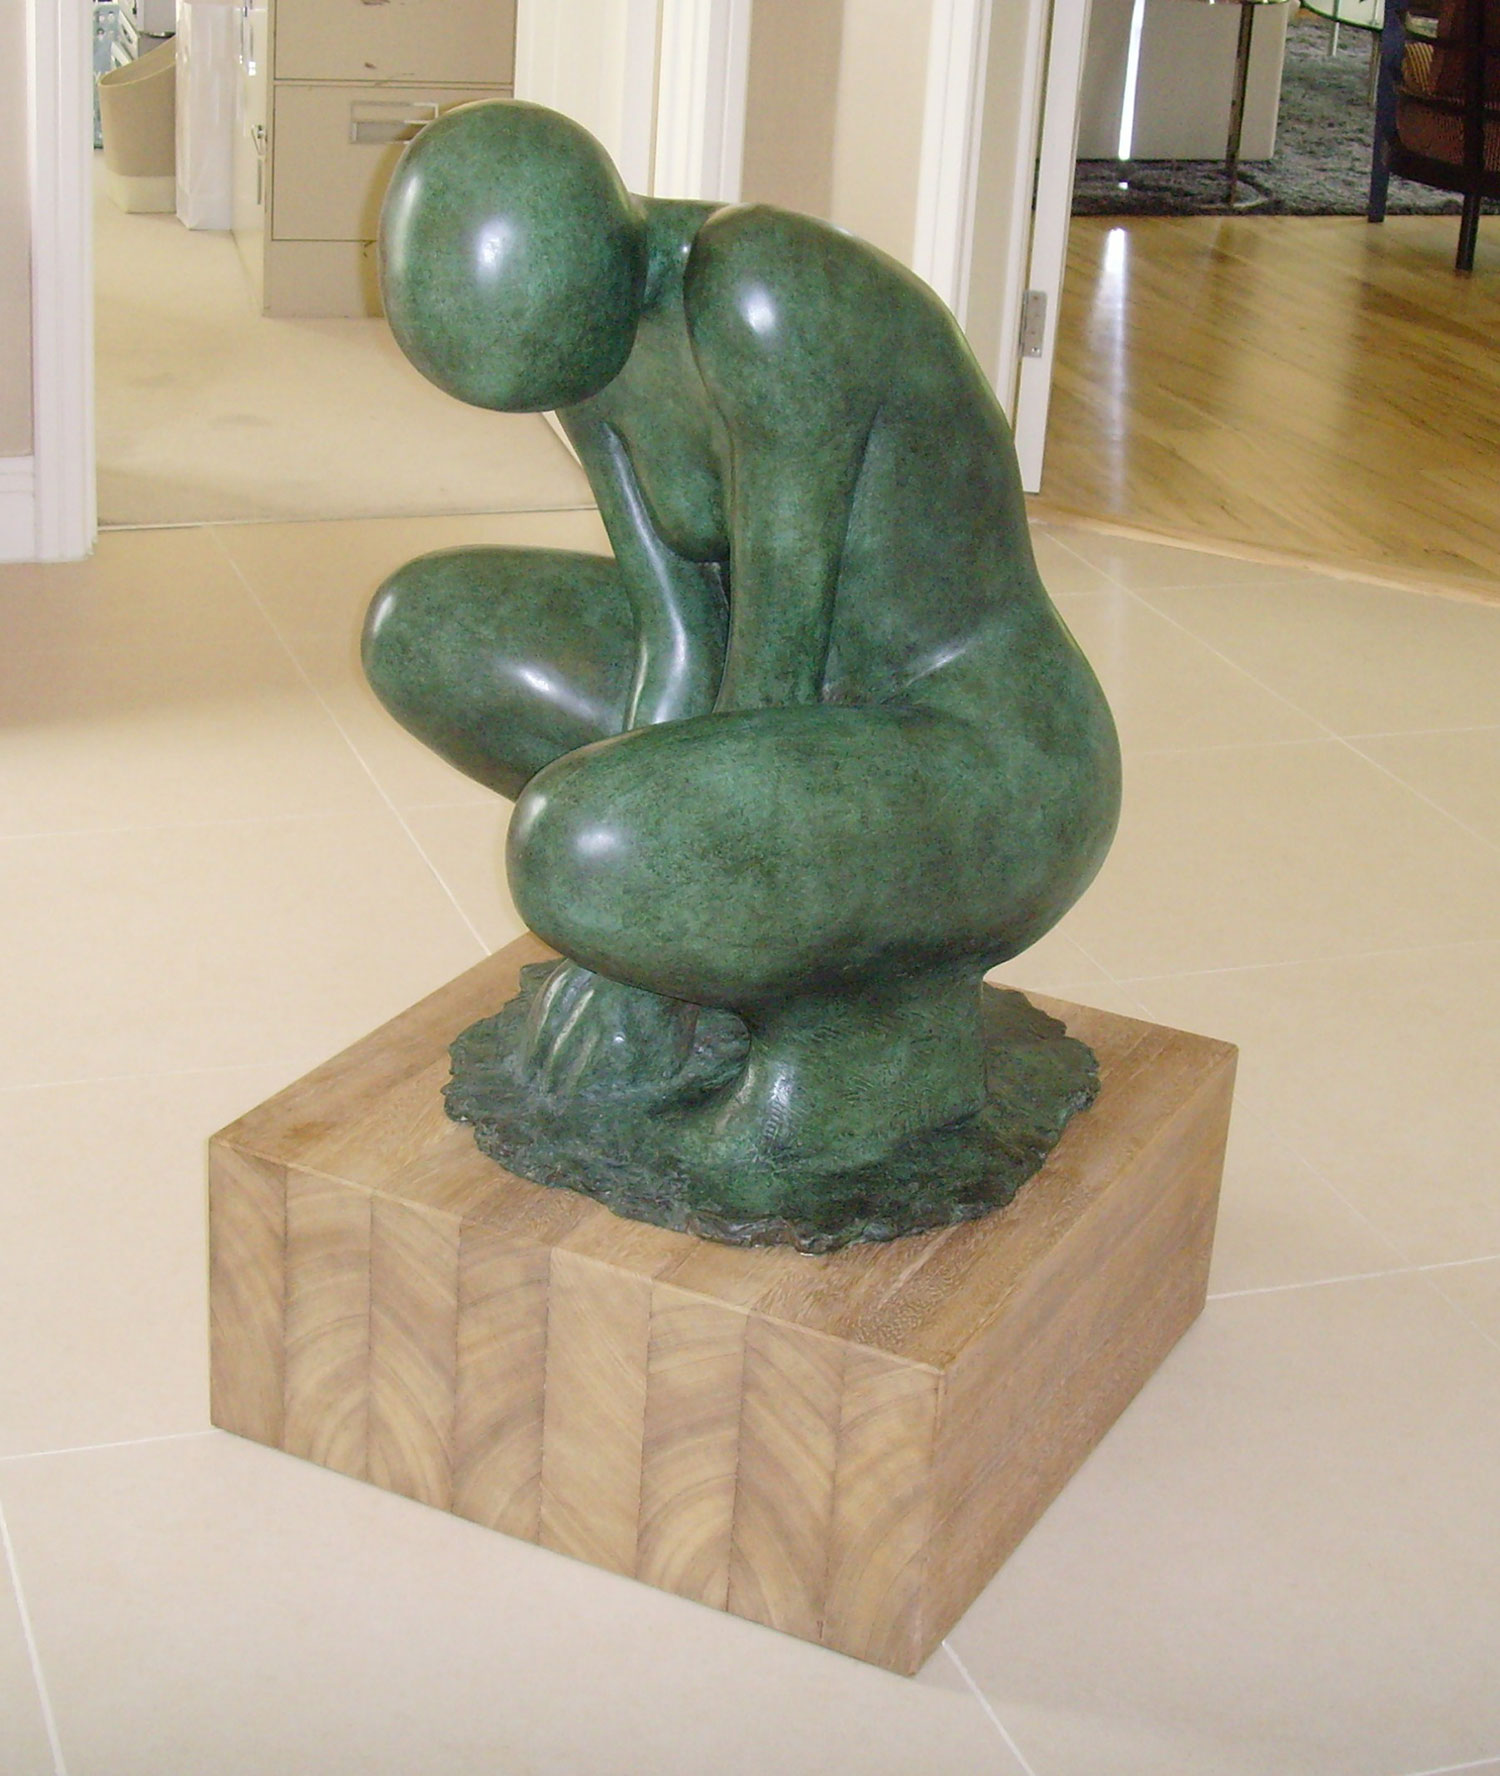 Bronze sculpture of life sized crouching female form for garden or interior.